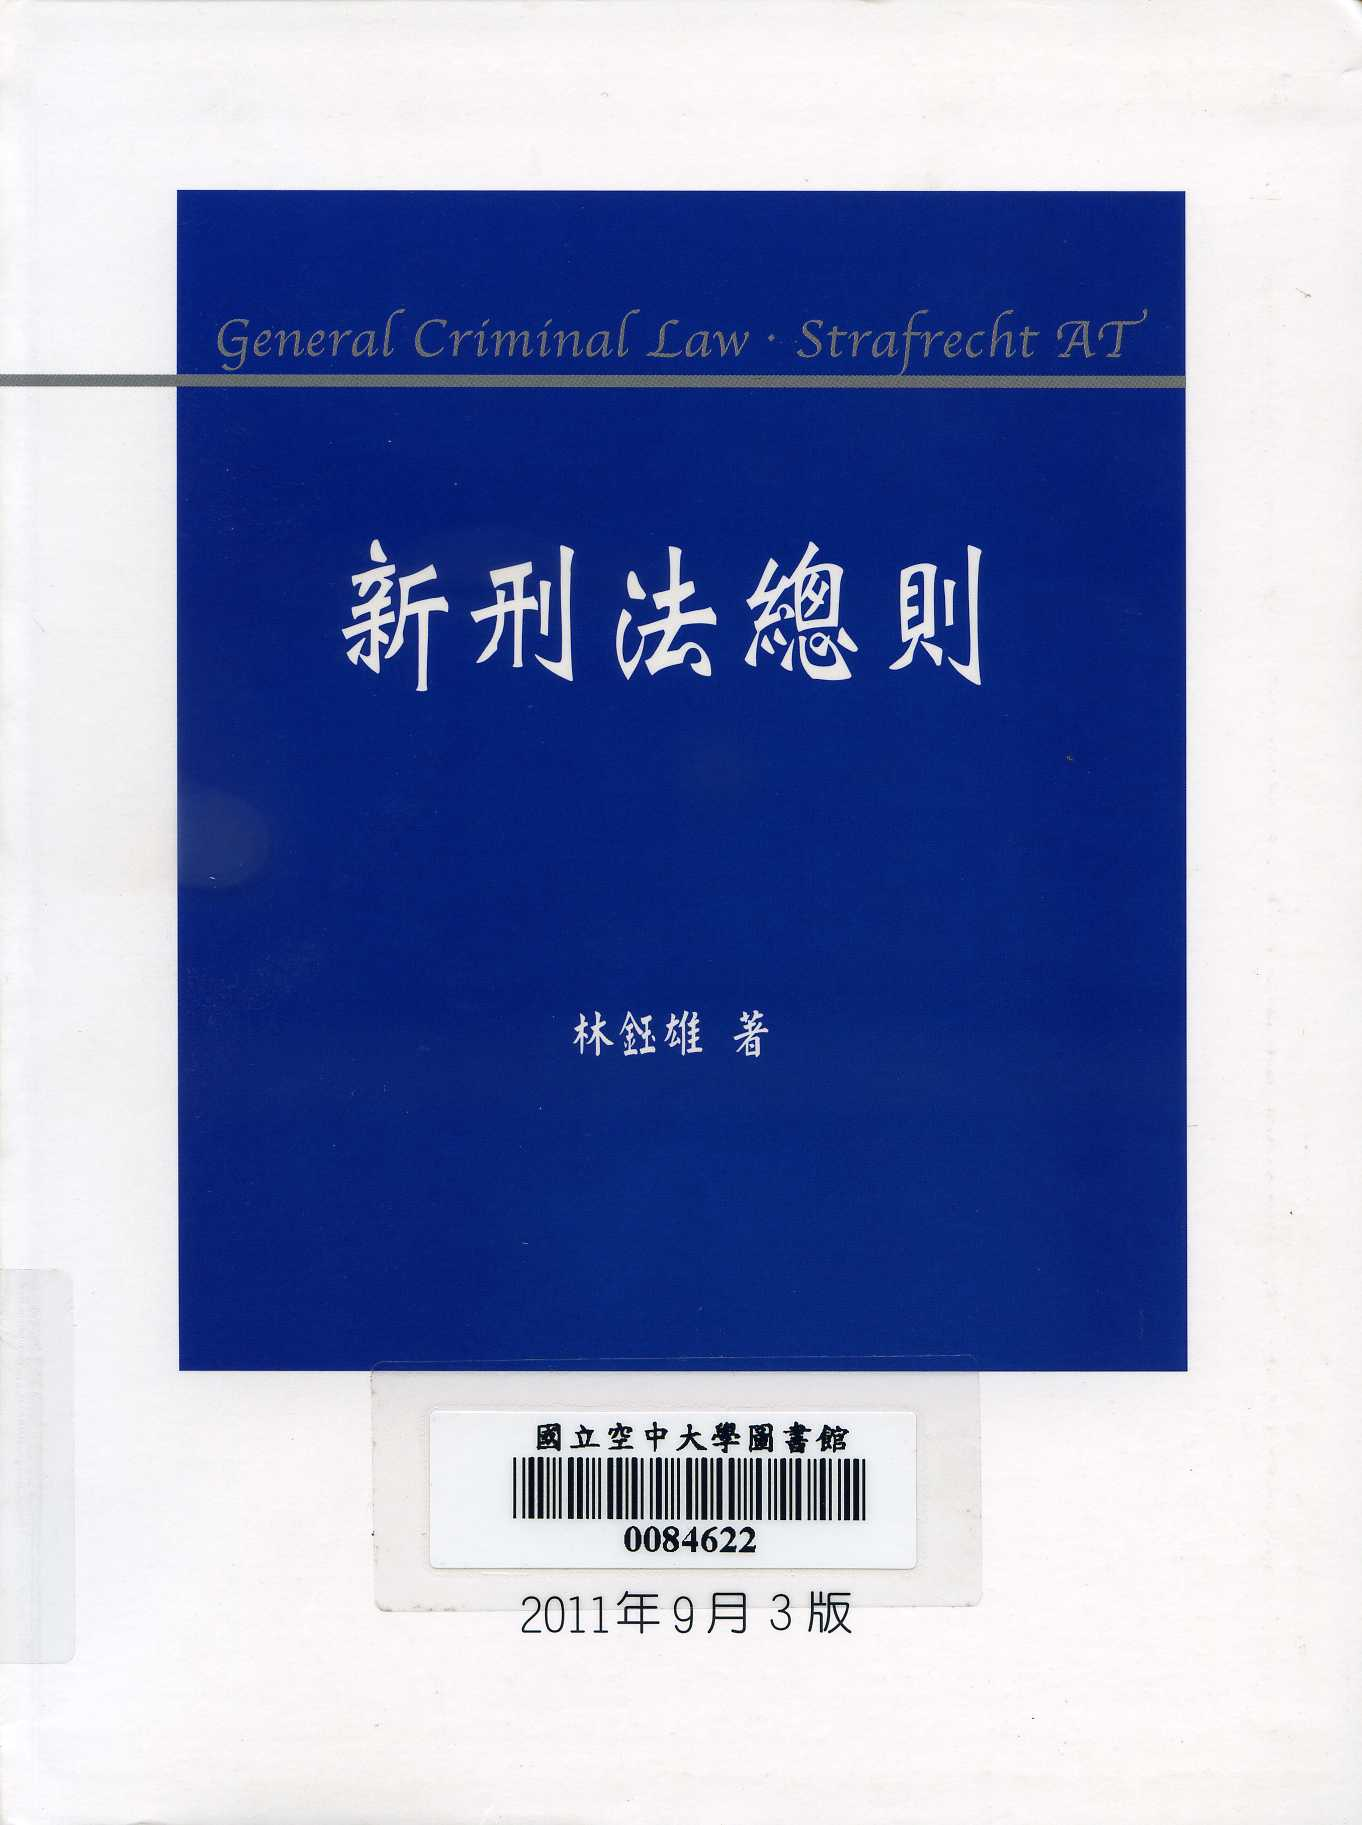 新刑法總則 = General criminal law.strafrecht AT.